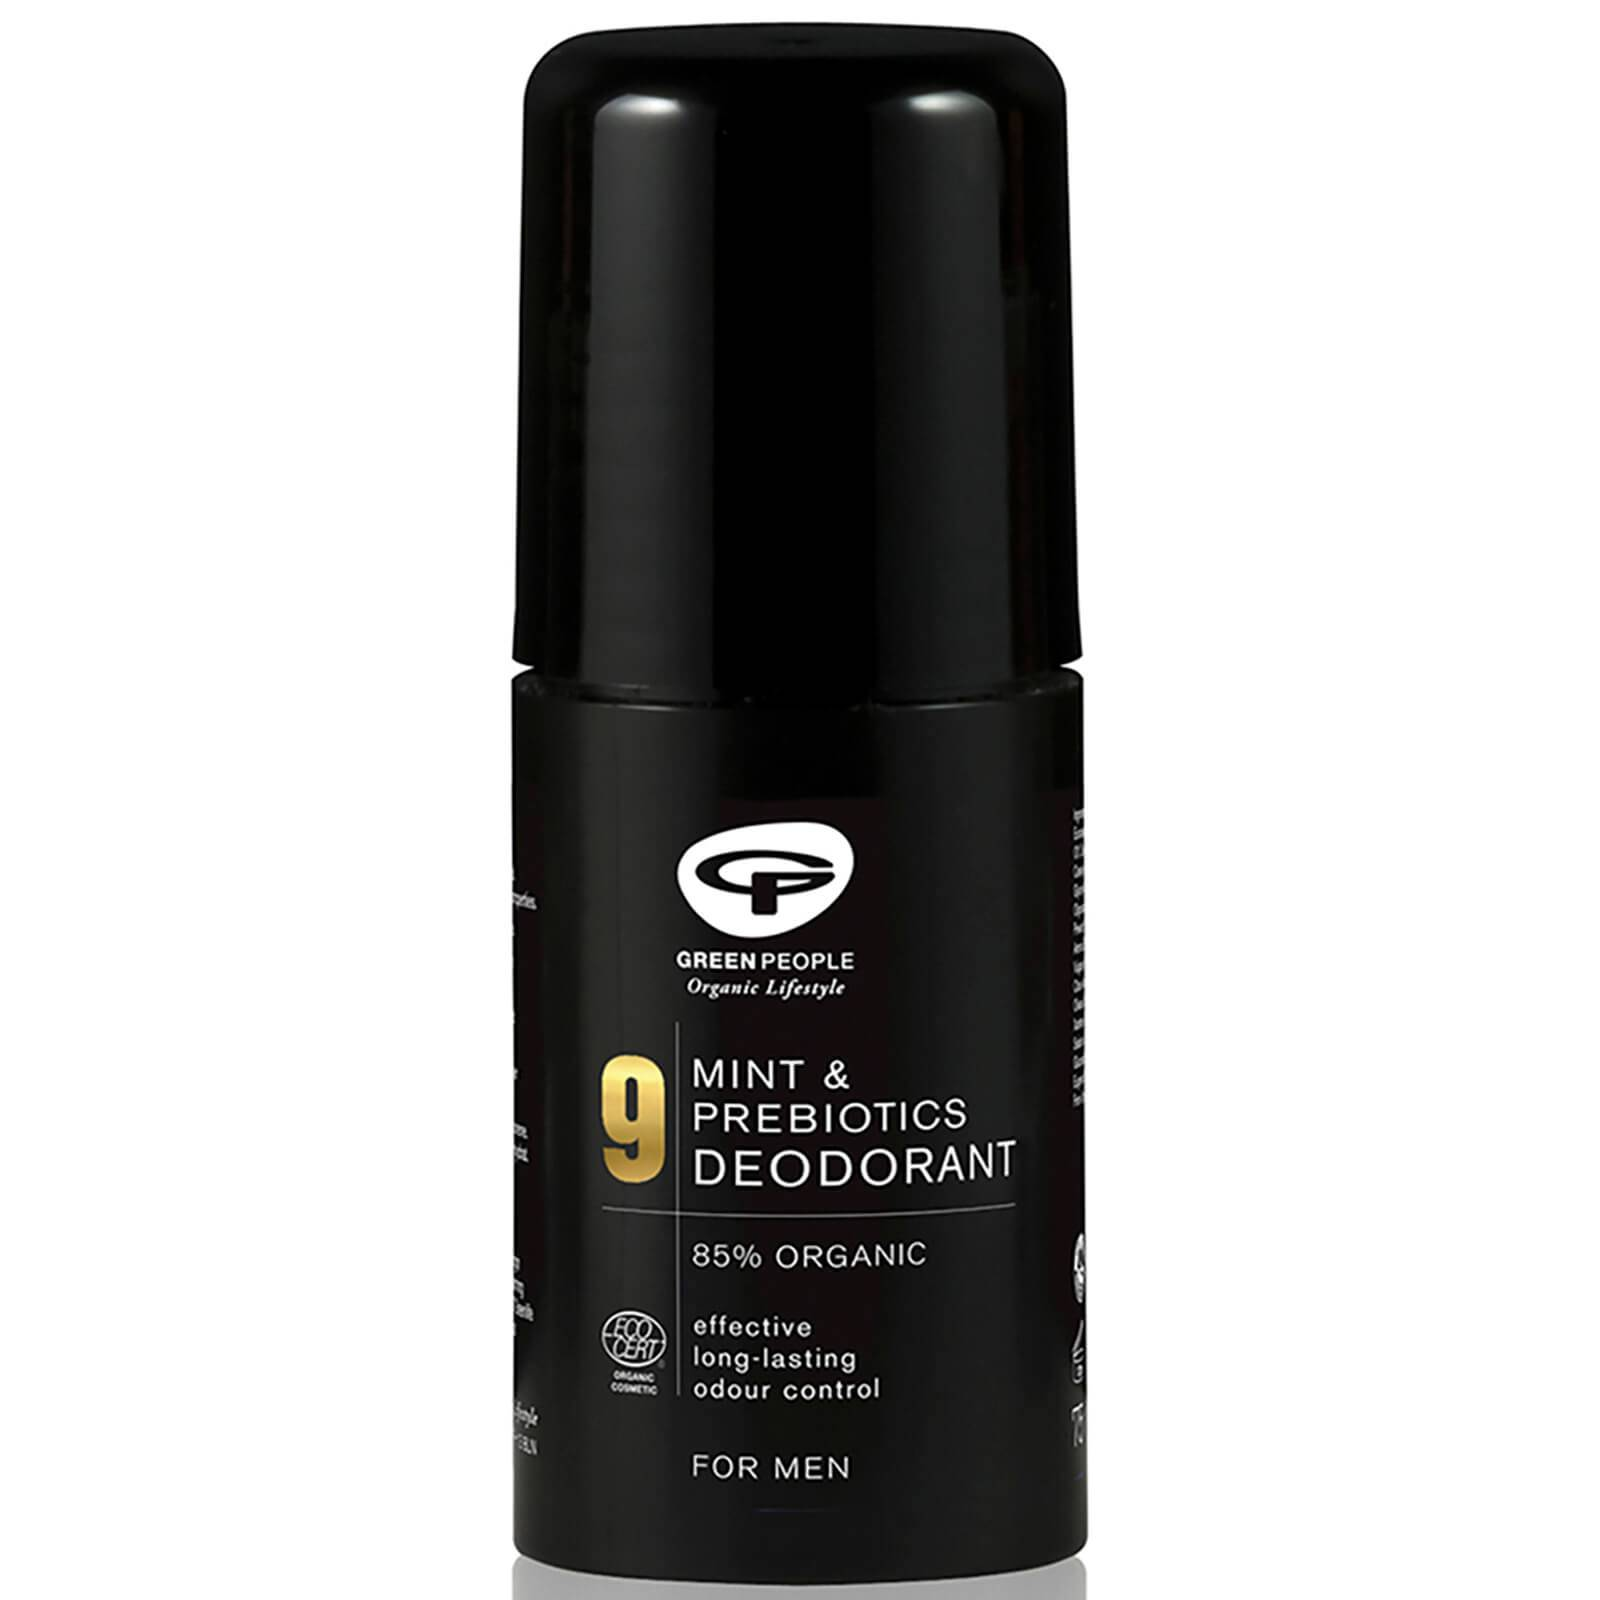 Green People Déodorant Stay Cool Organic Homme 9 par Green People(75ml)